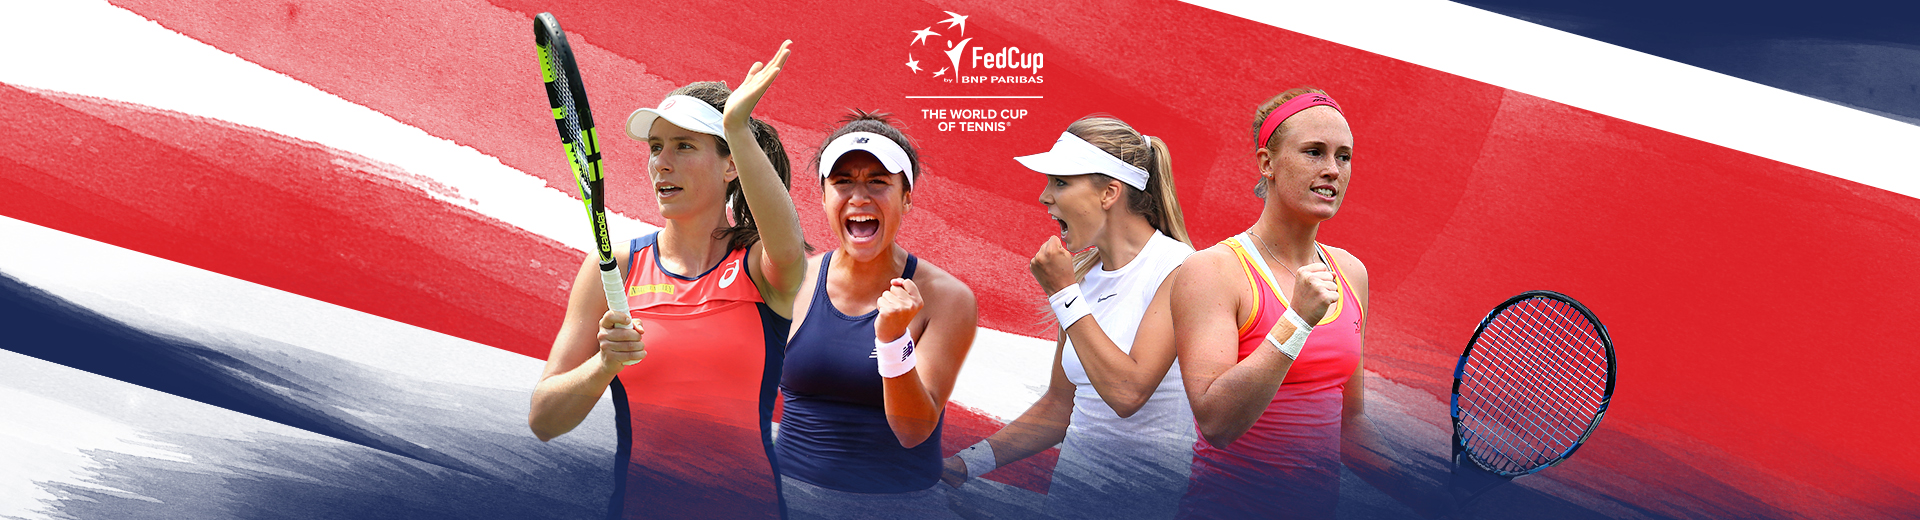 GB's Fed Cup team named for opening tie